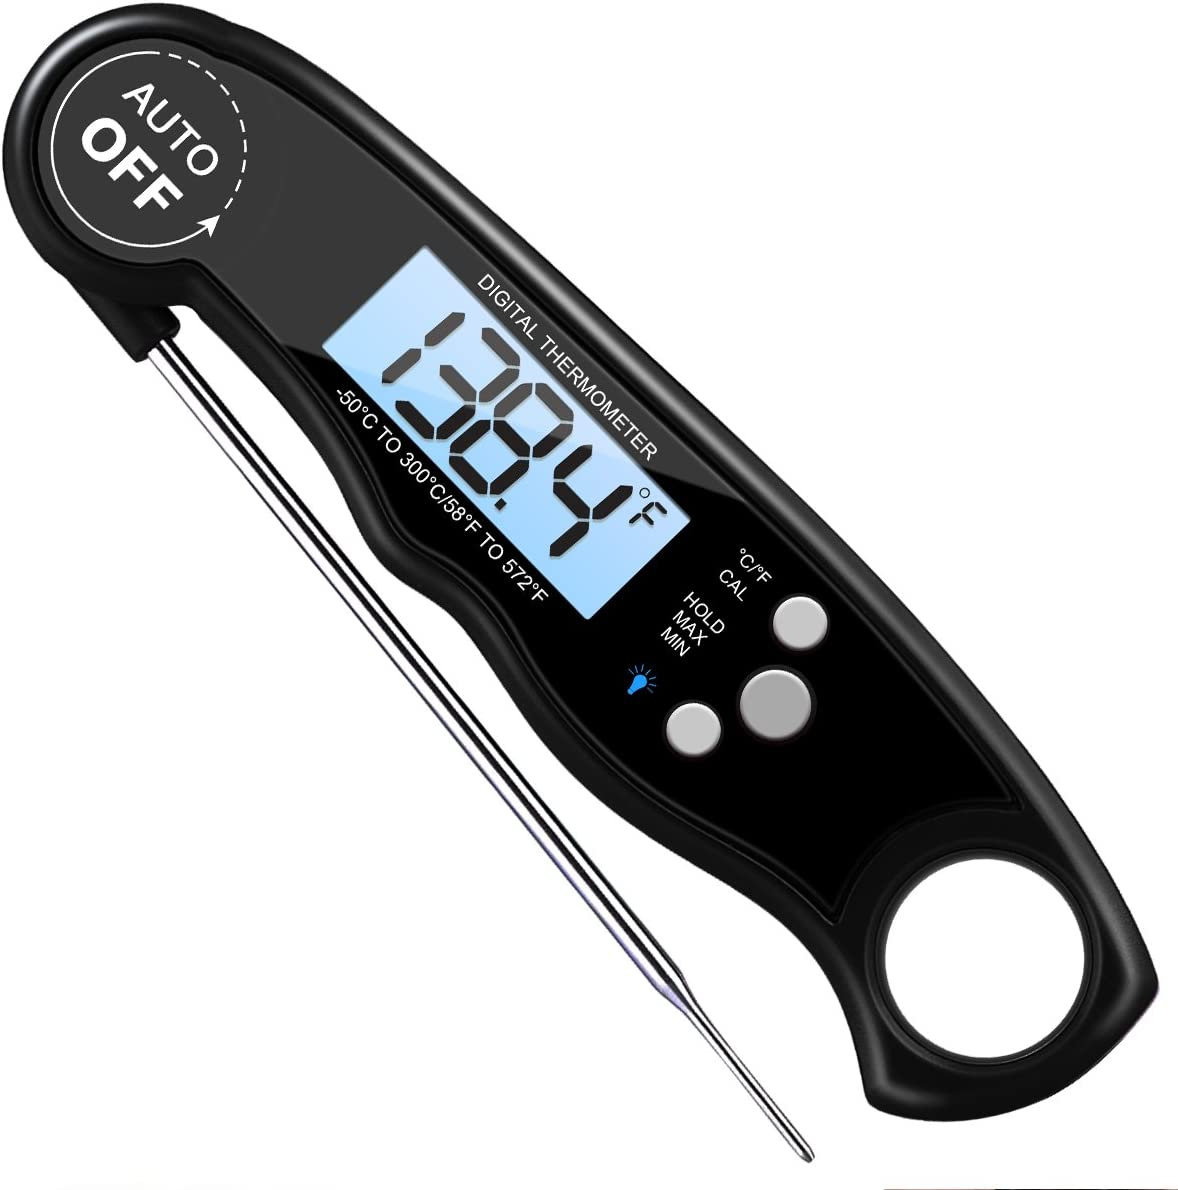 ORIA Meat Thermometer, Waterproof Cooking Food Thermometer, Digital Instant Read Meat Thermometer with Backlight, Calibration, Auto Off, Hold/Max/Min Button for Kitchen, Cooking Food, BBQ, Black